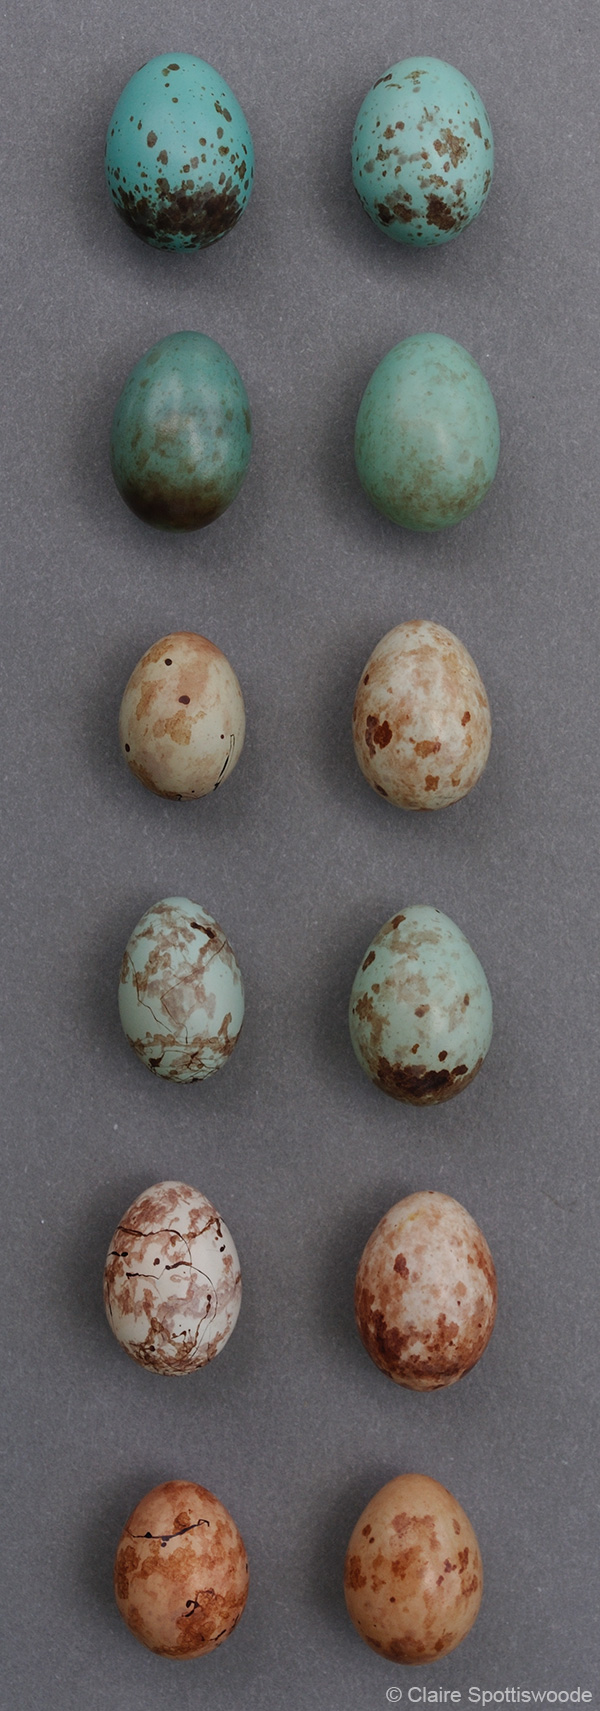 Cuckoo Finch egg mimicry